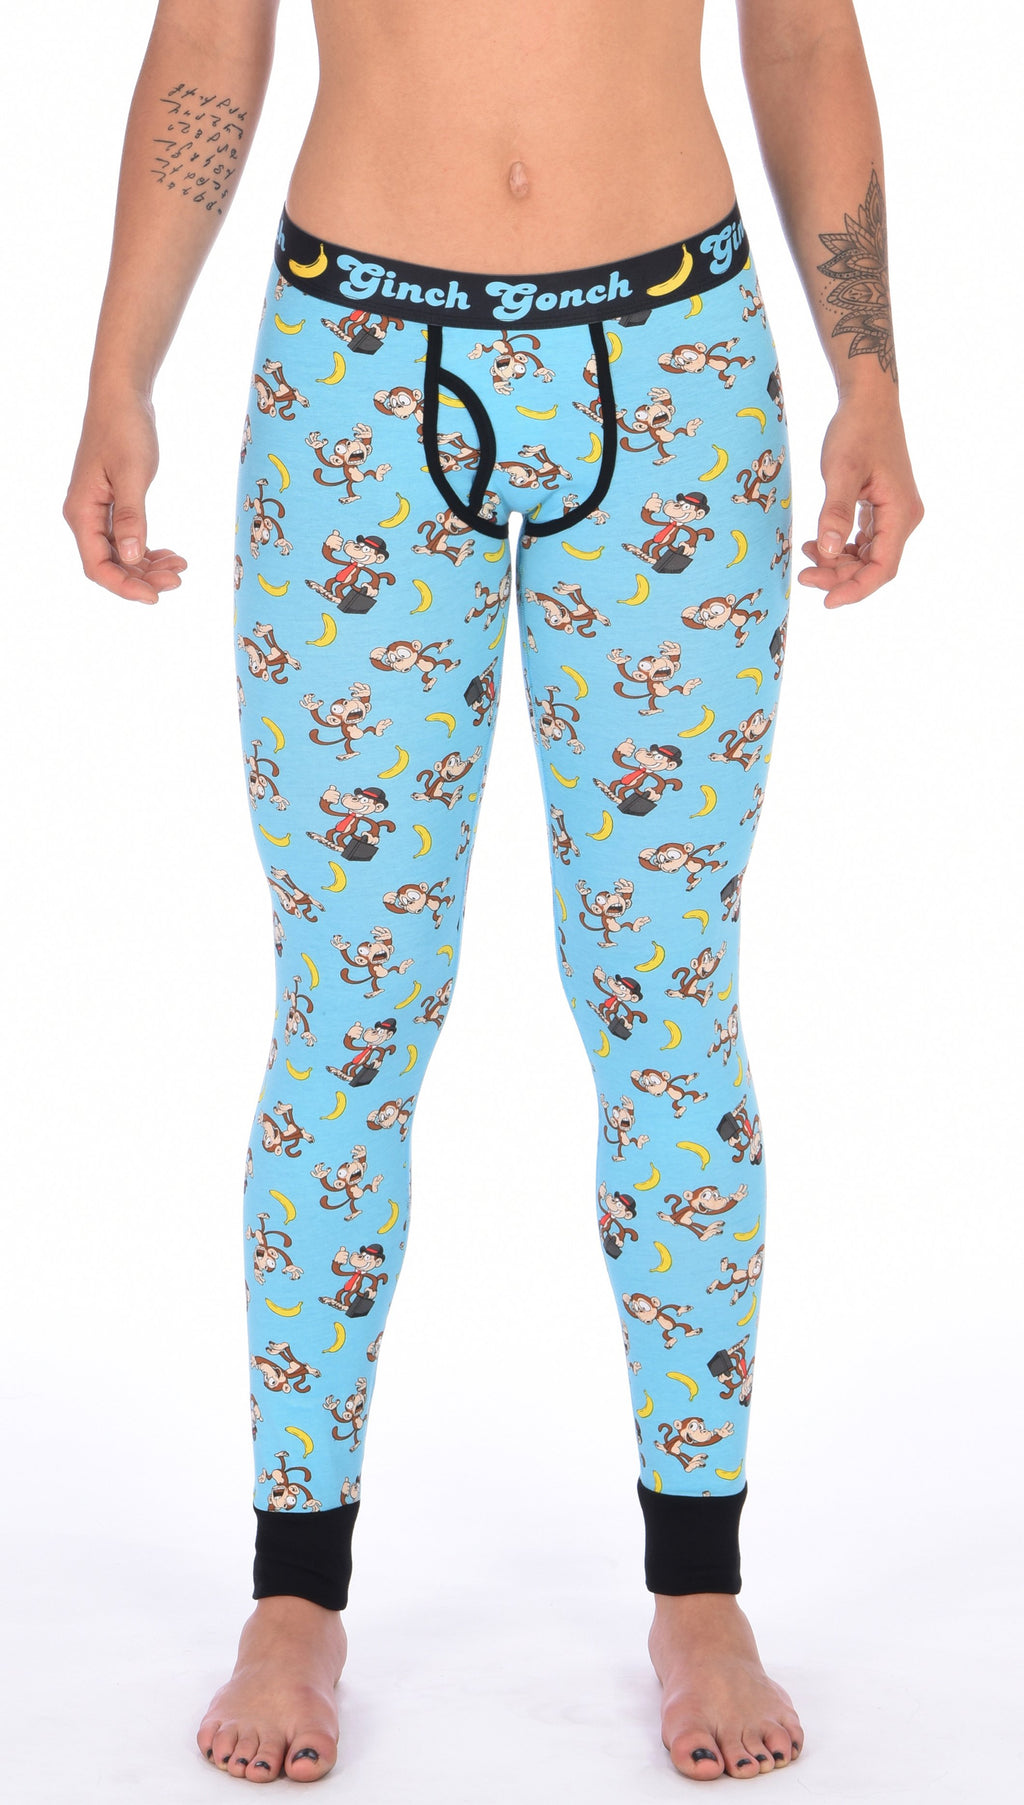 Ginch Gonch Monkey Business Women's Leggings Long Johns Underwear with blue background, monkeys, and bananas. Black trim and printed waistband with Ginch Gonch and bananas. Front.